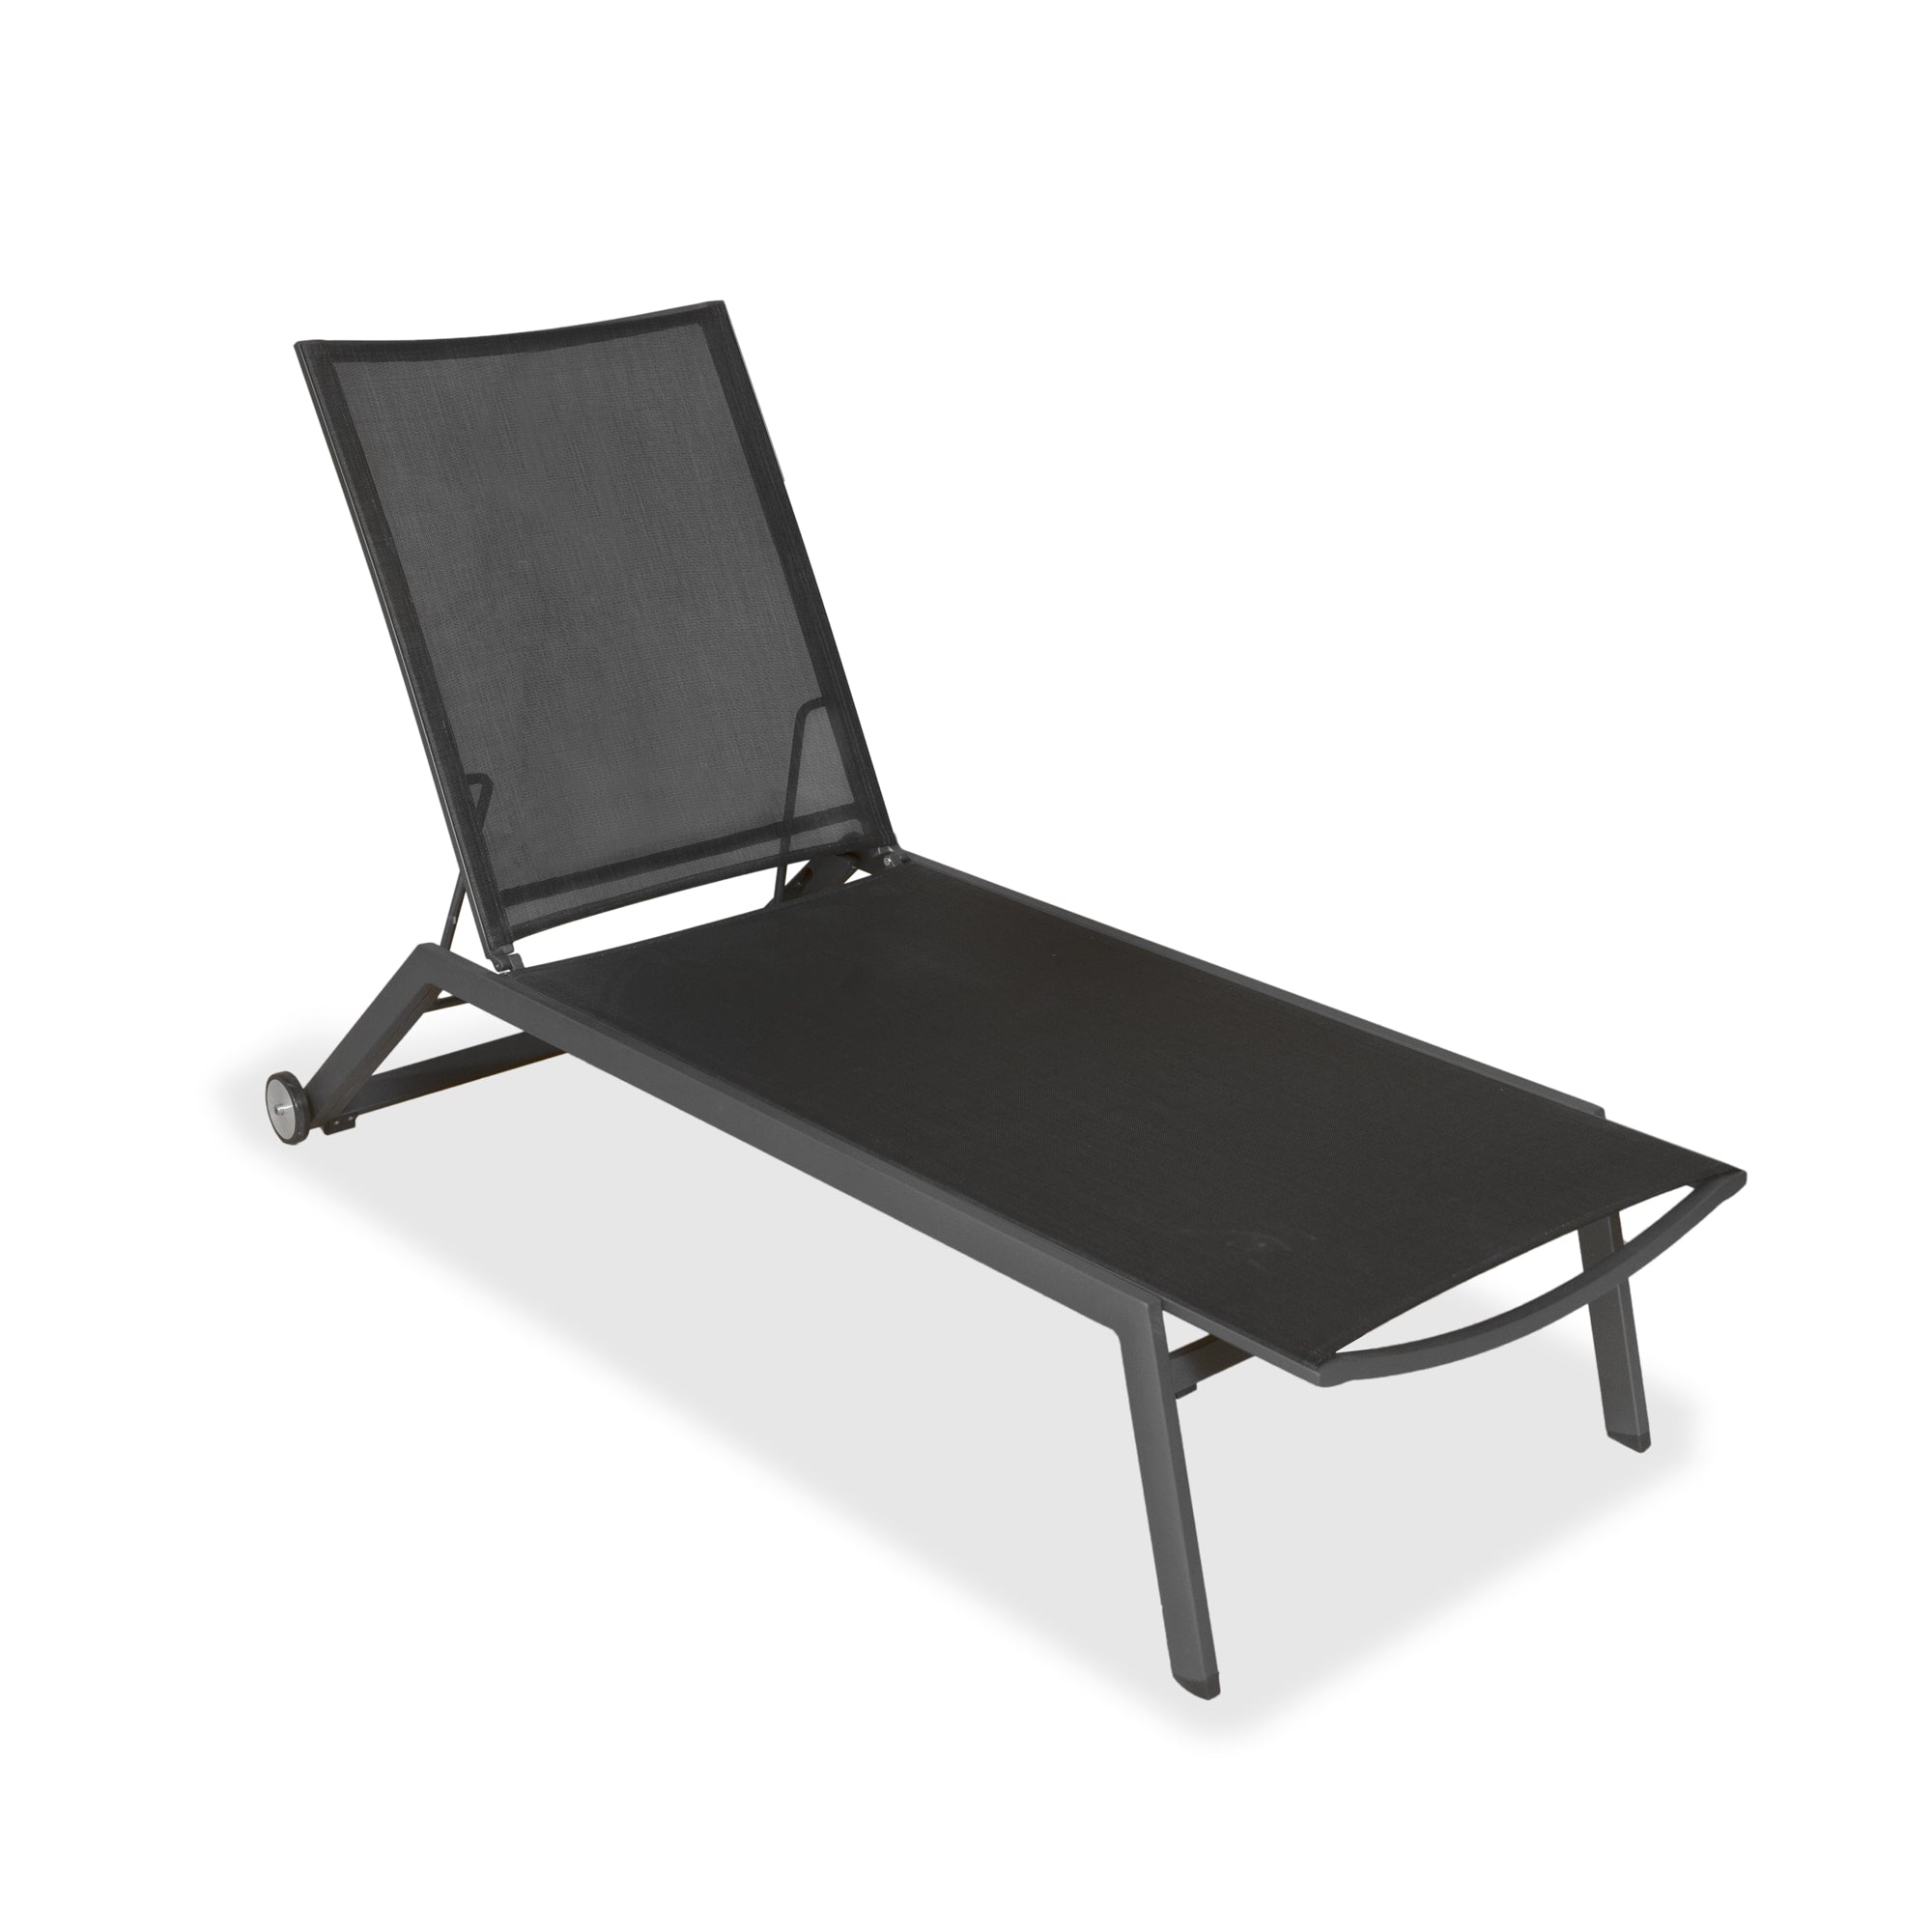 Evette Outdoor Sun Lounge in Anthracite